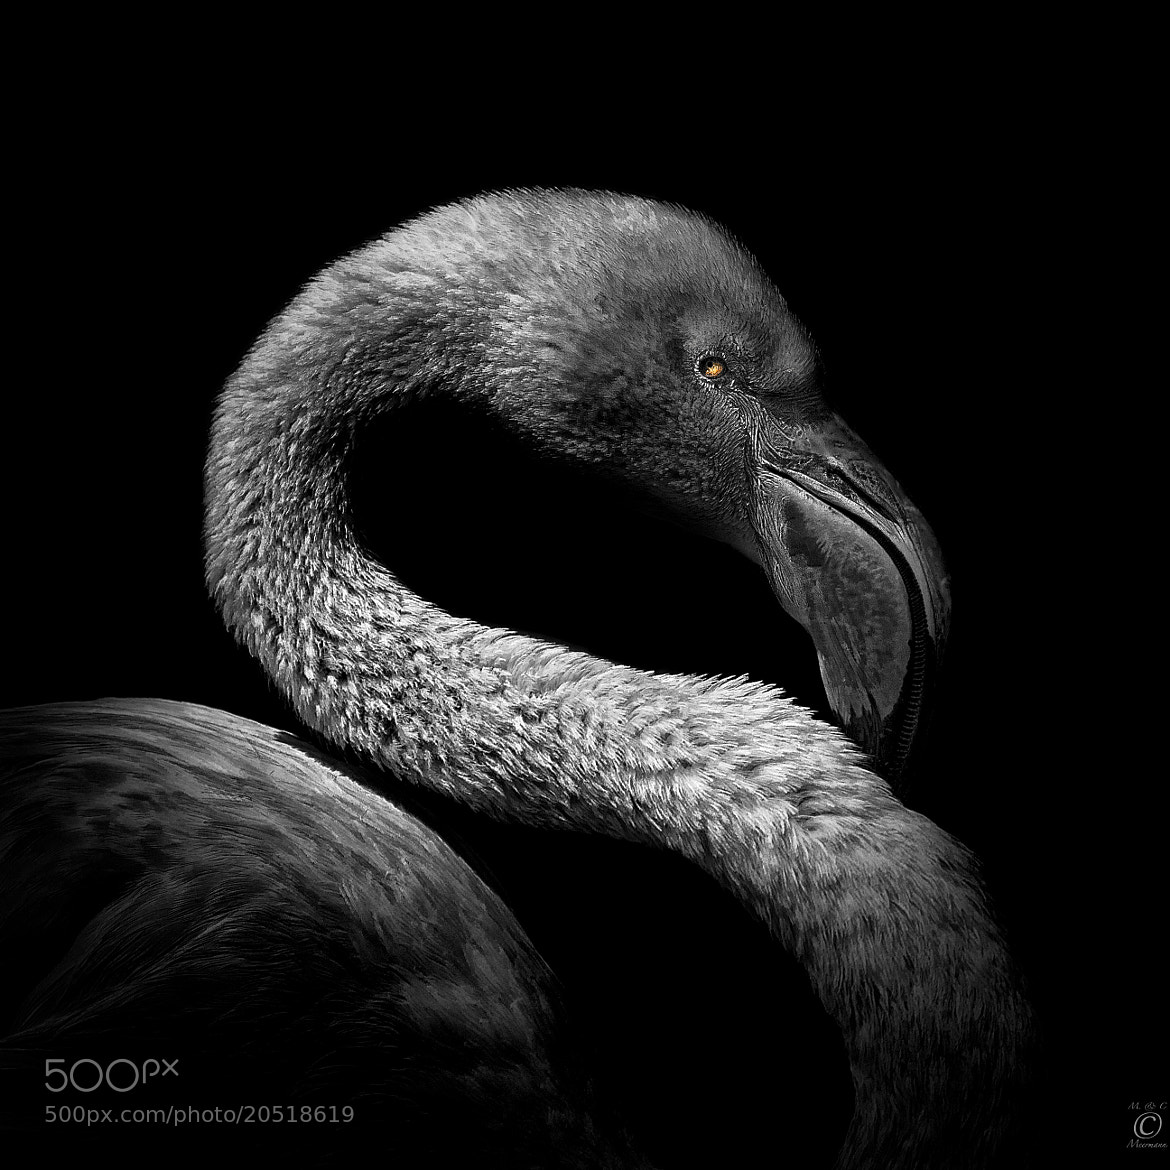 Photograph The Eye of The Beholder (BW version) by Christian Meermann on 500px